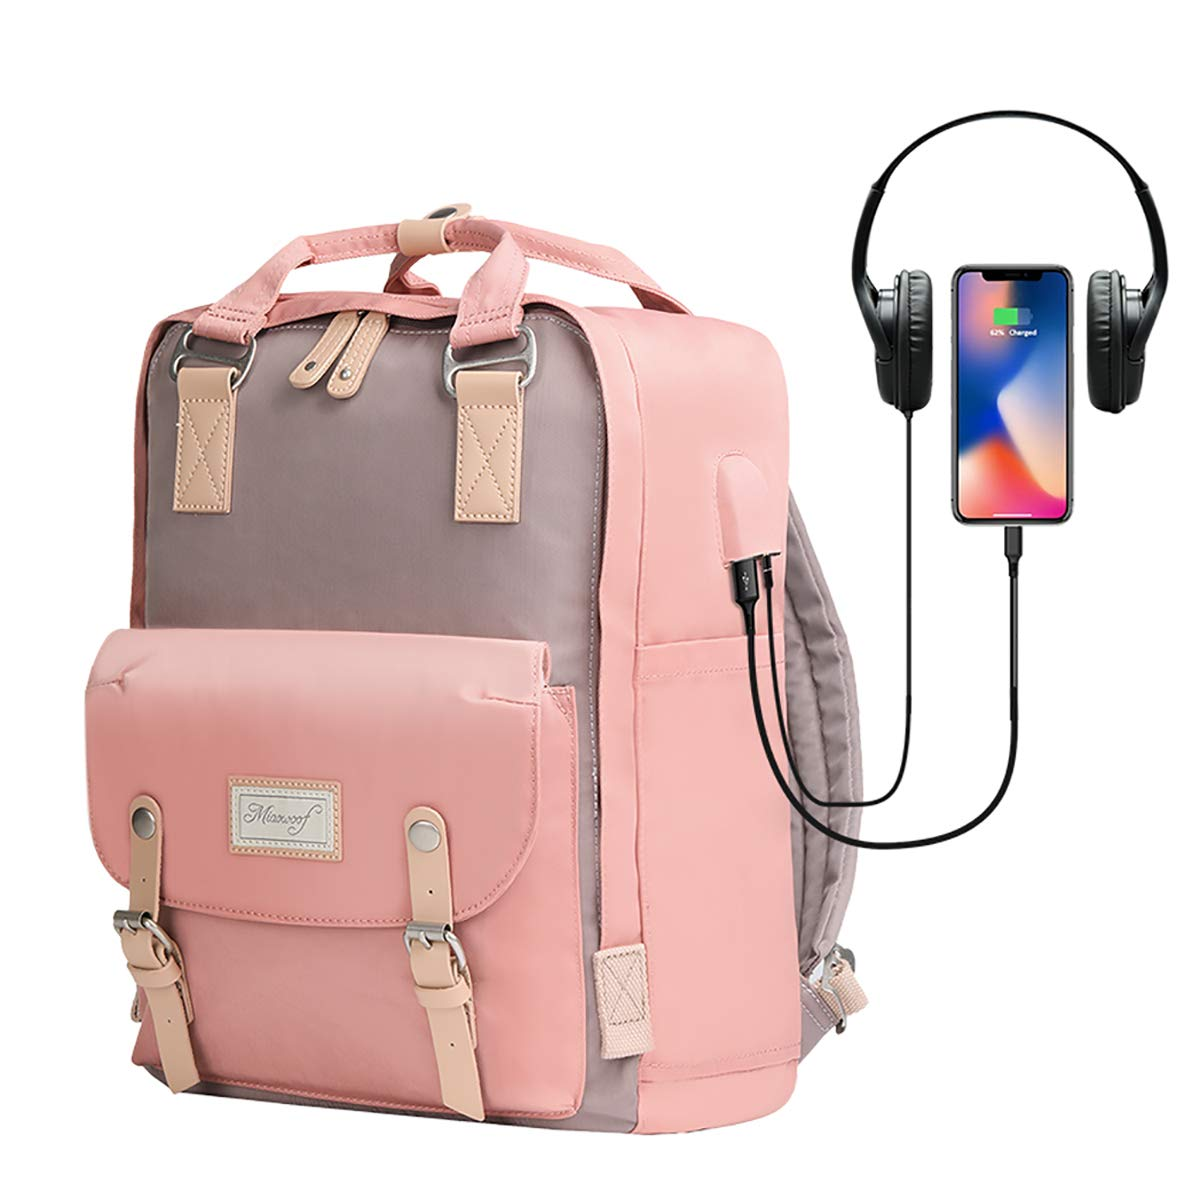 Cute Mommy Backpack Diaper Bag – Small Convertible Backpack Purse Bookbag with Top-Handle for Girls Women,Water-Resistant 14 inch Laptop Backpack with USB Charging Port Headphone Jack